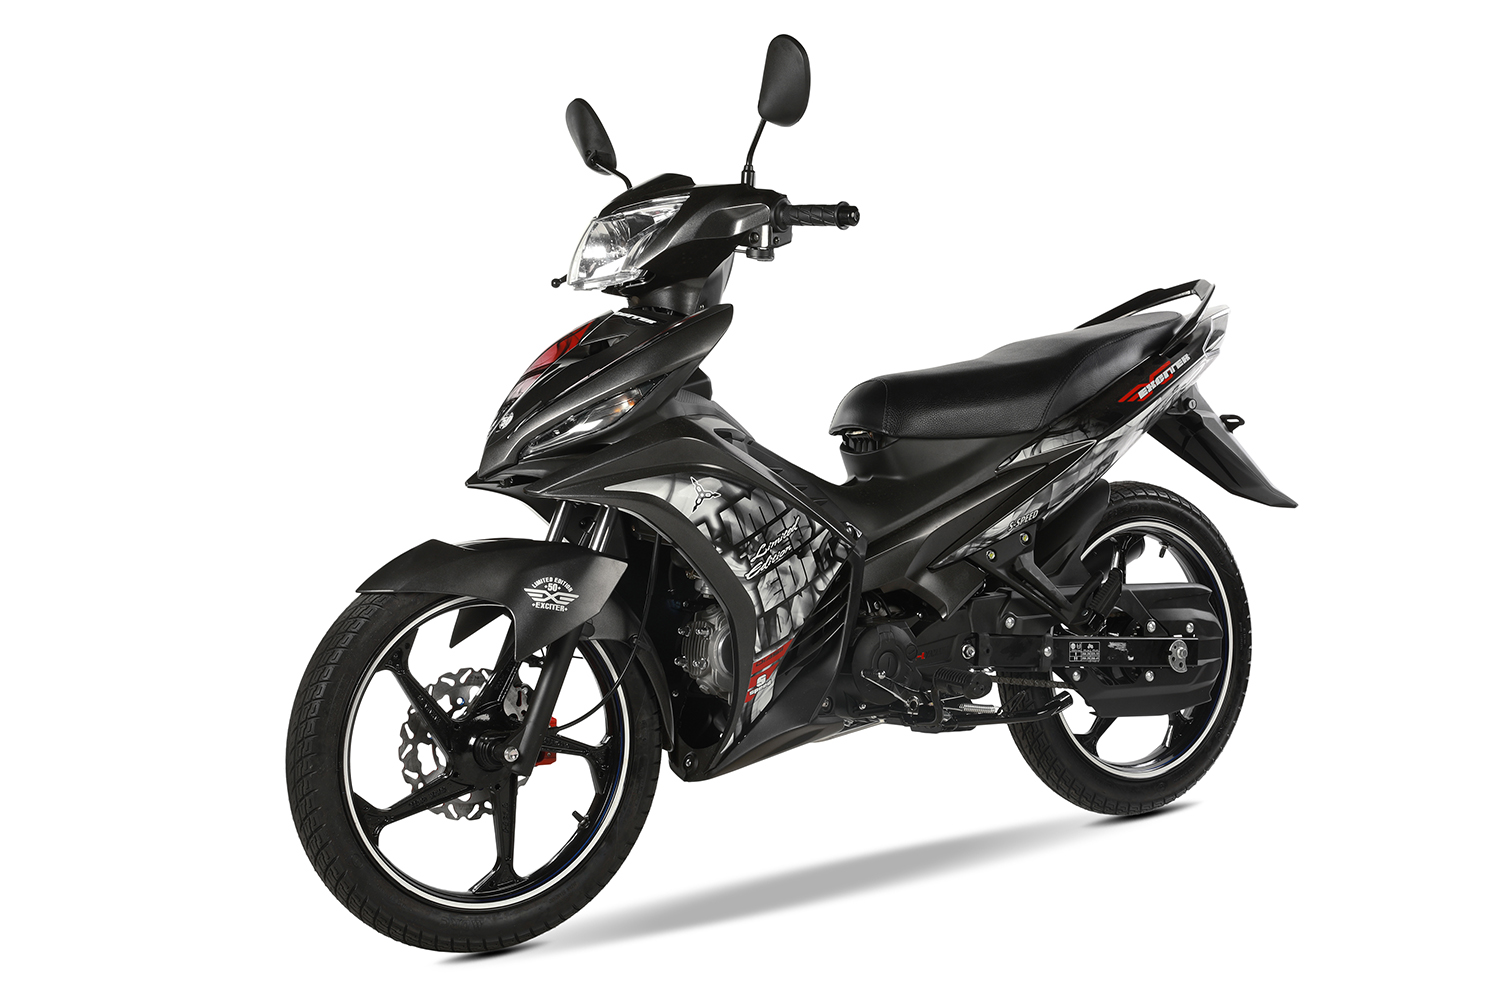 xe-may-exciter-135cc-mau-do-1